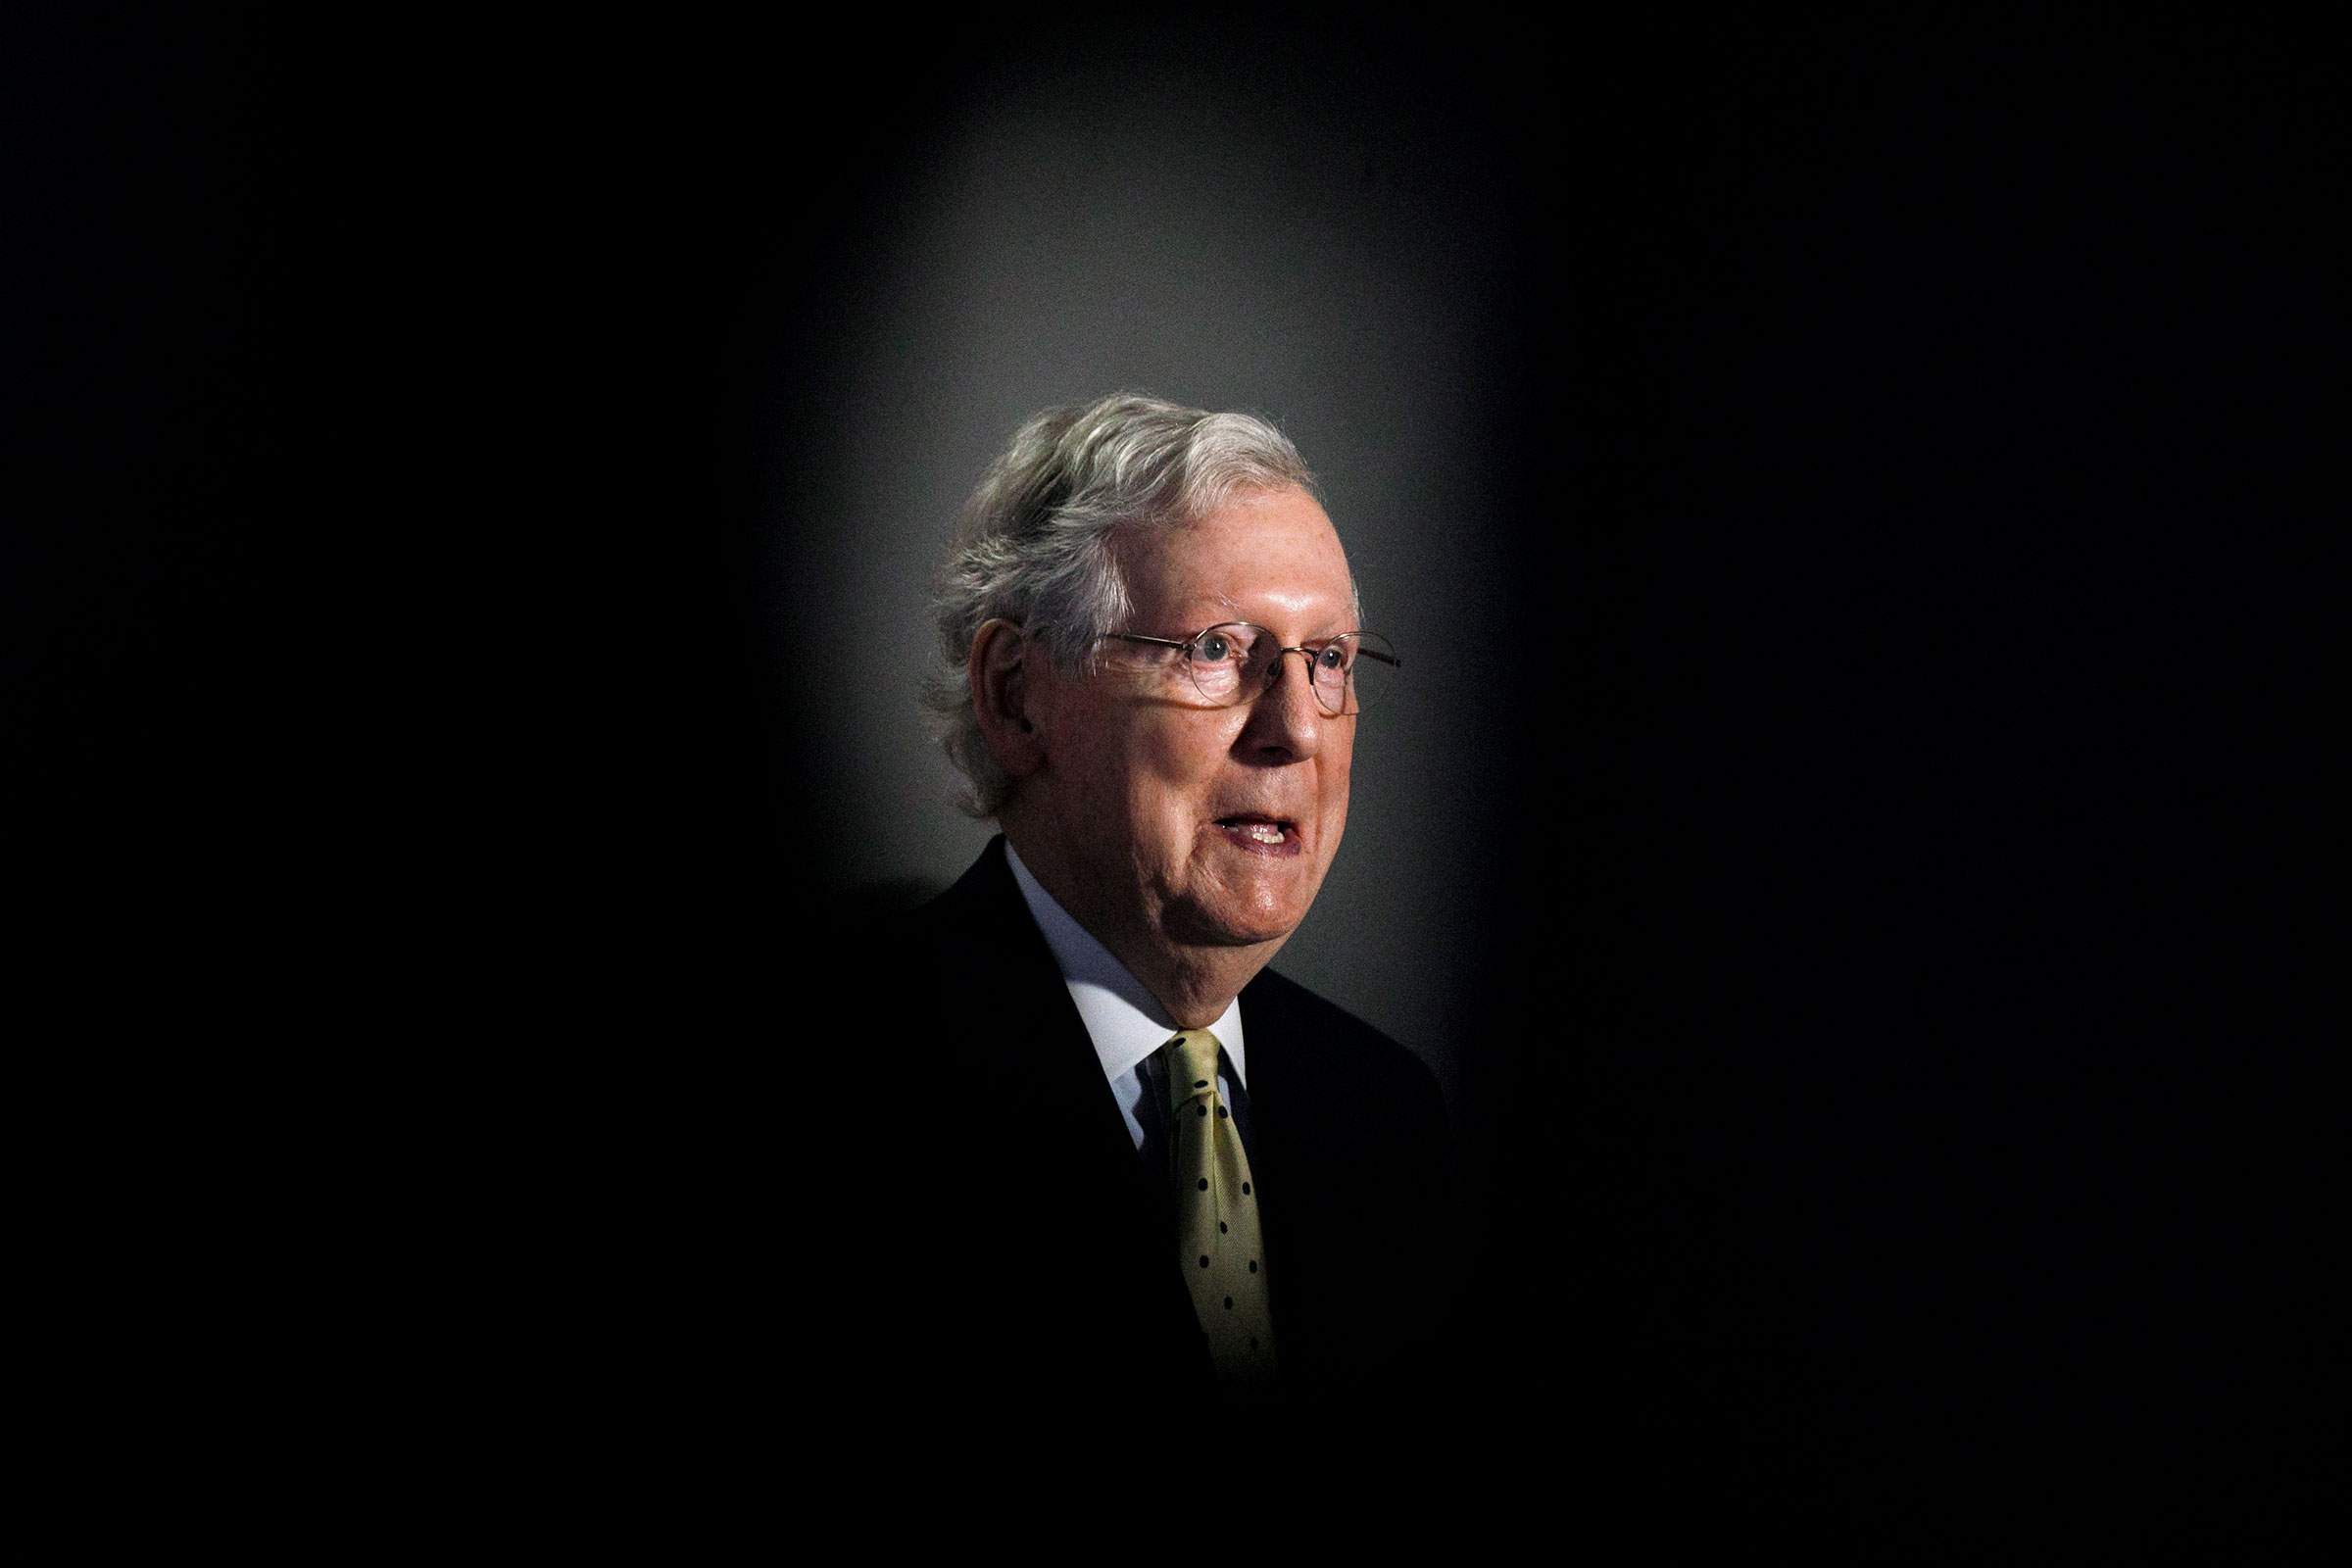 Senate Majority Leader Mitch McConnell of Ky., speaks during a news conference after attending a Republican luncheon on Capitol Hill in Washington on July 21, 2020.